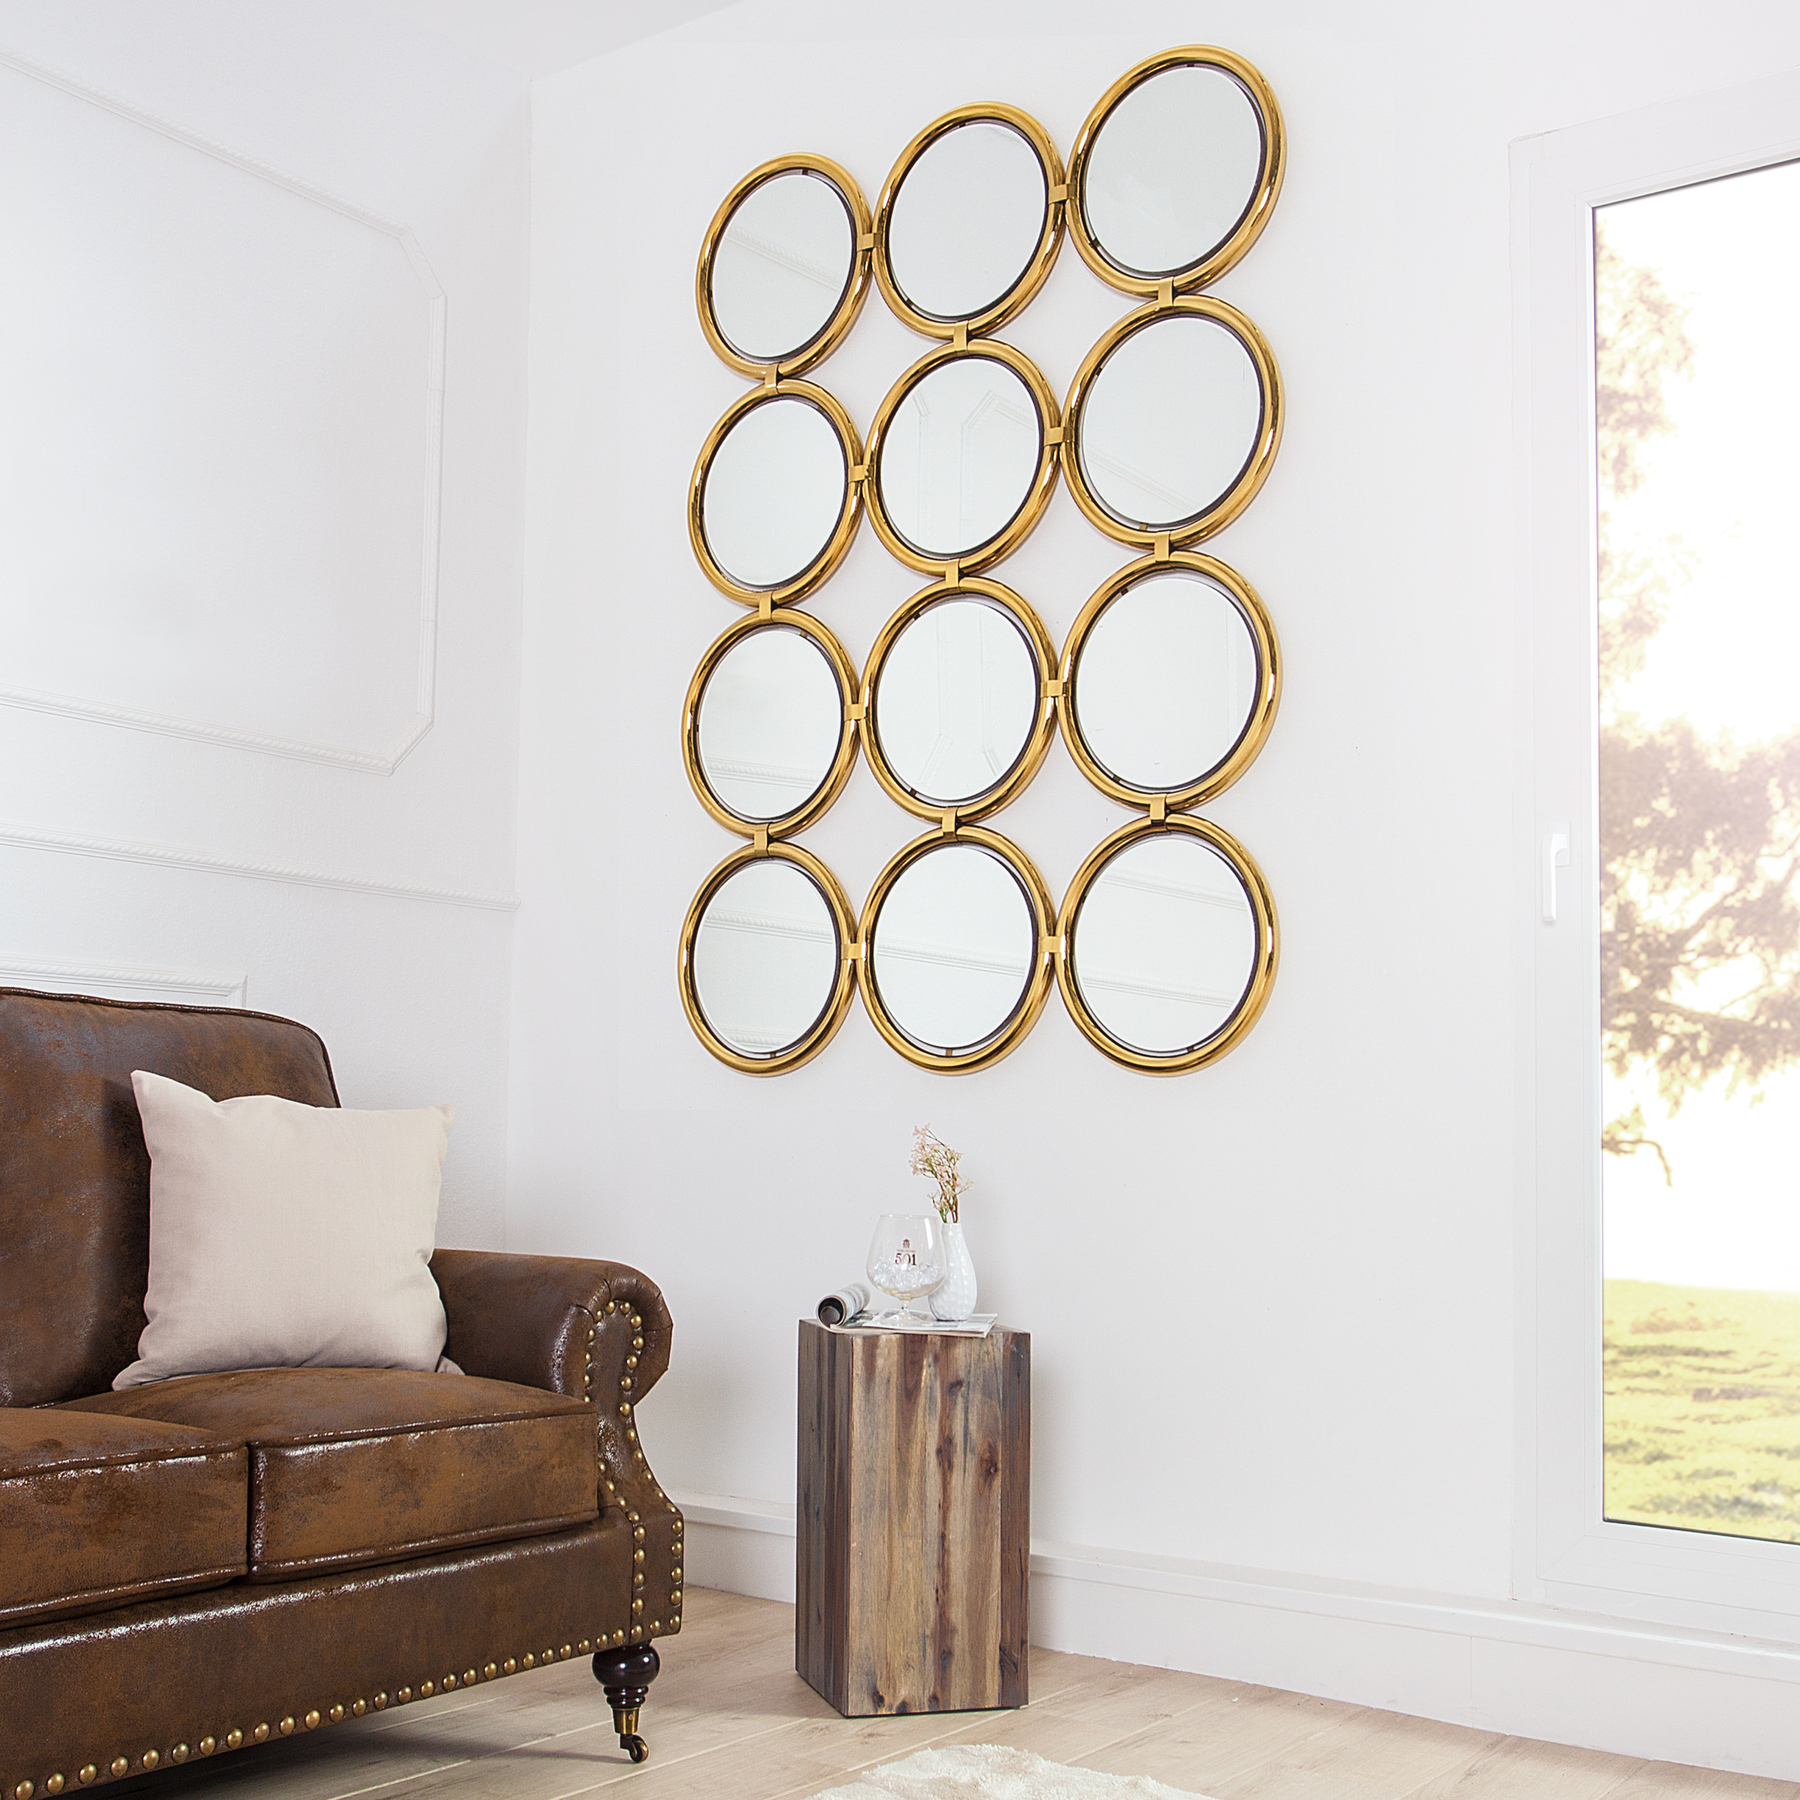 gro er design wandspiegel circle gold 130 cm spiegel rund ebay. Black Bedroom Furniture Sets. Home Design Ideas